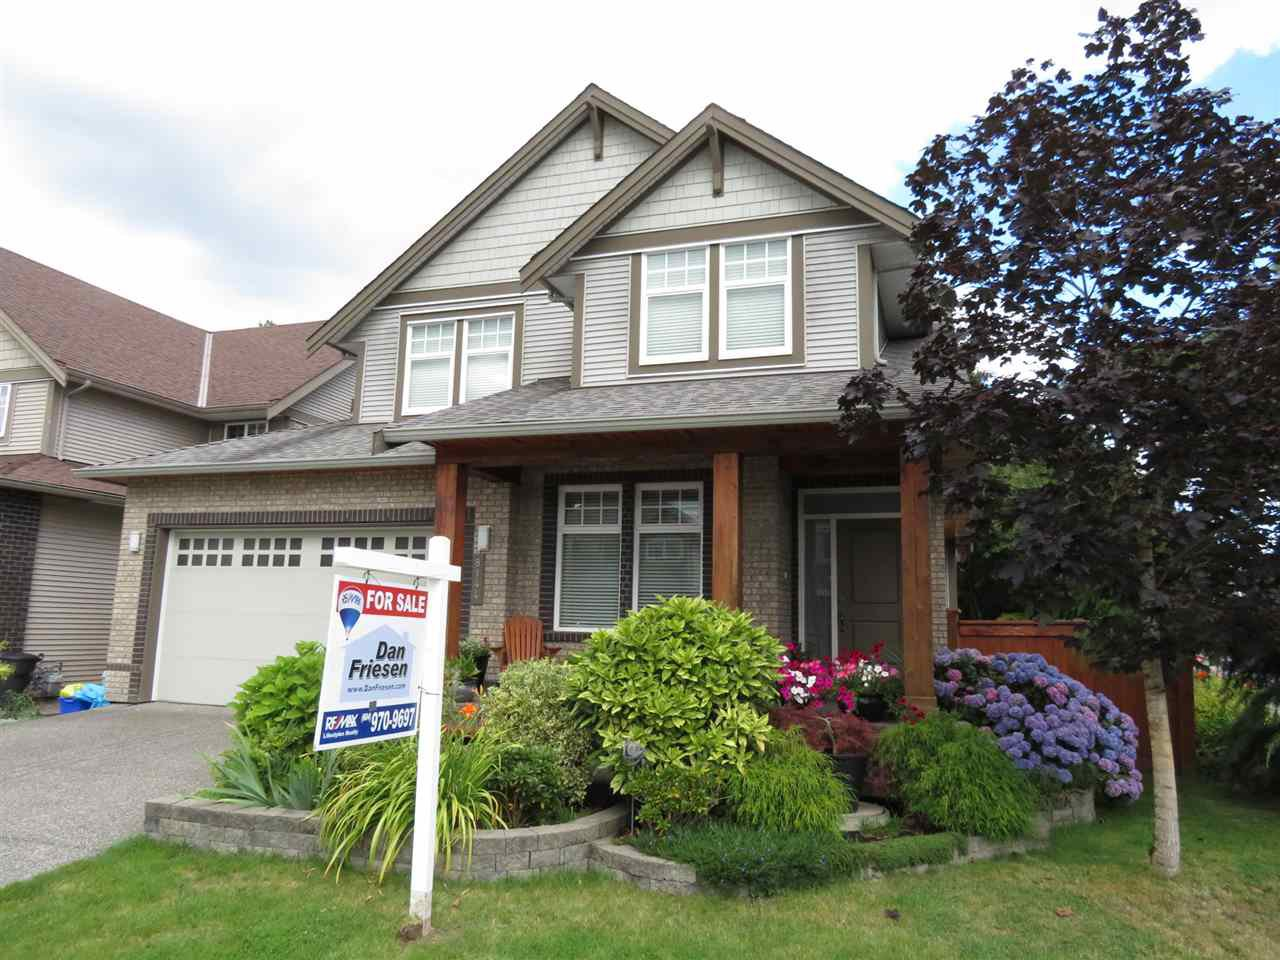 Main Photo: 8144 211 STREET in Langley: Willoughby Heights House for sale : MLS®# R2093922